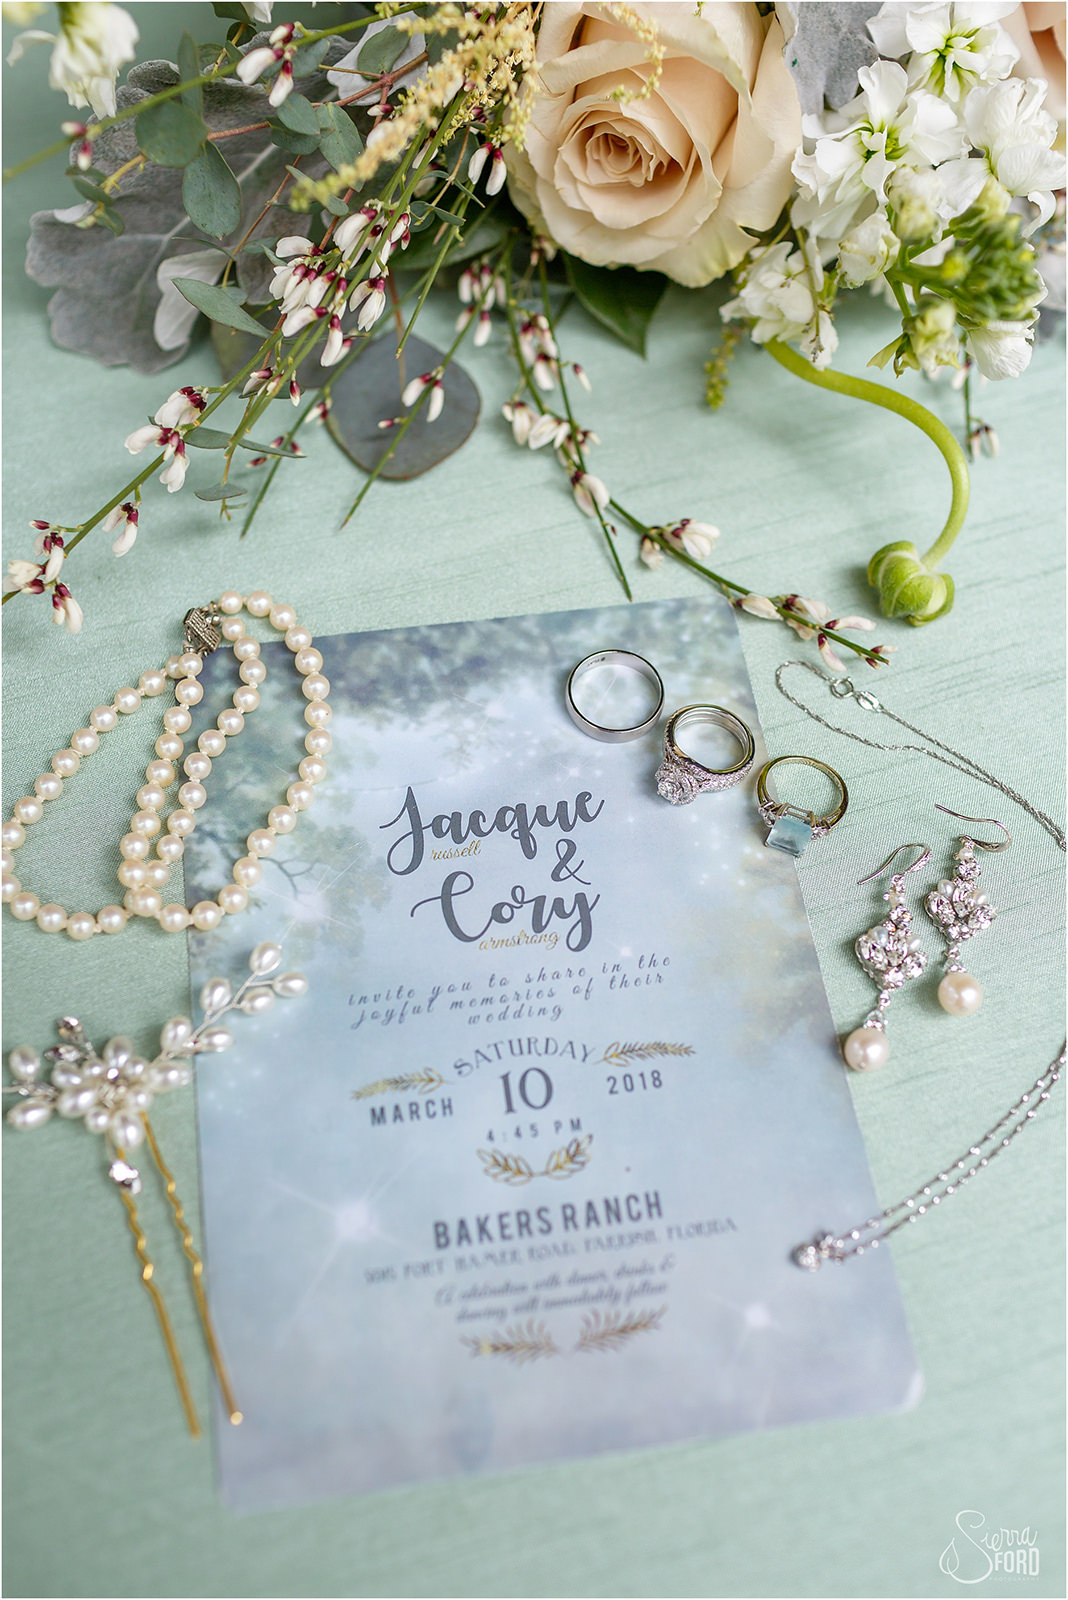 Wedding Crush | Jacque + Cory